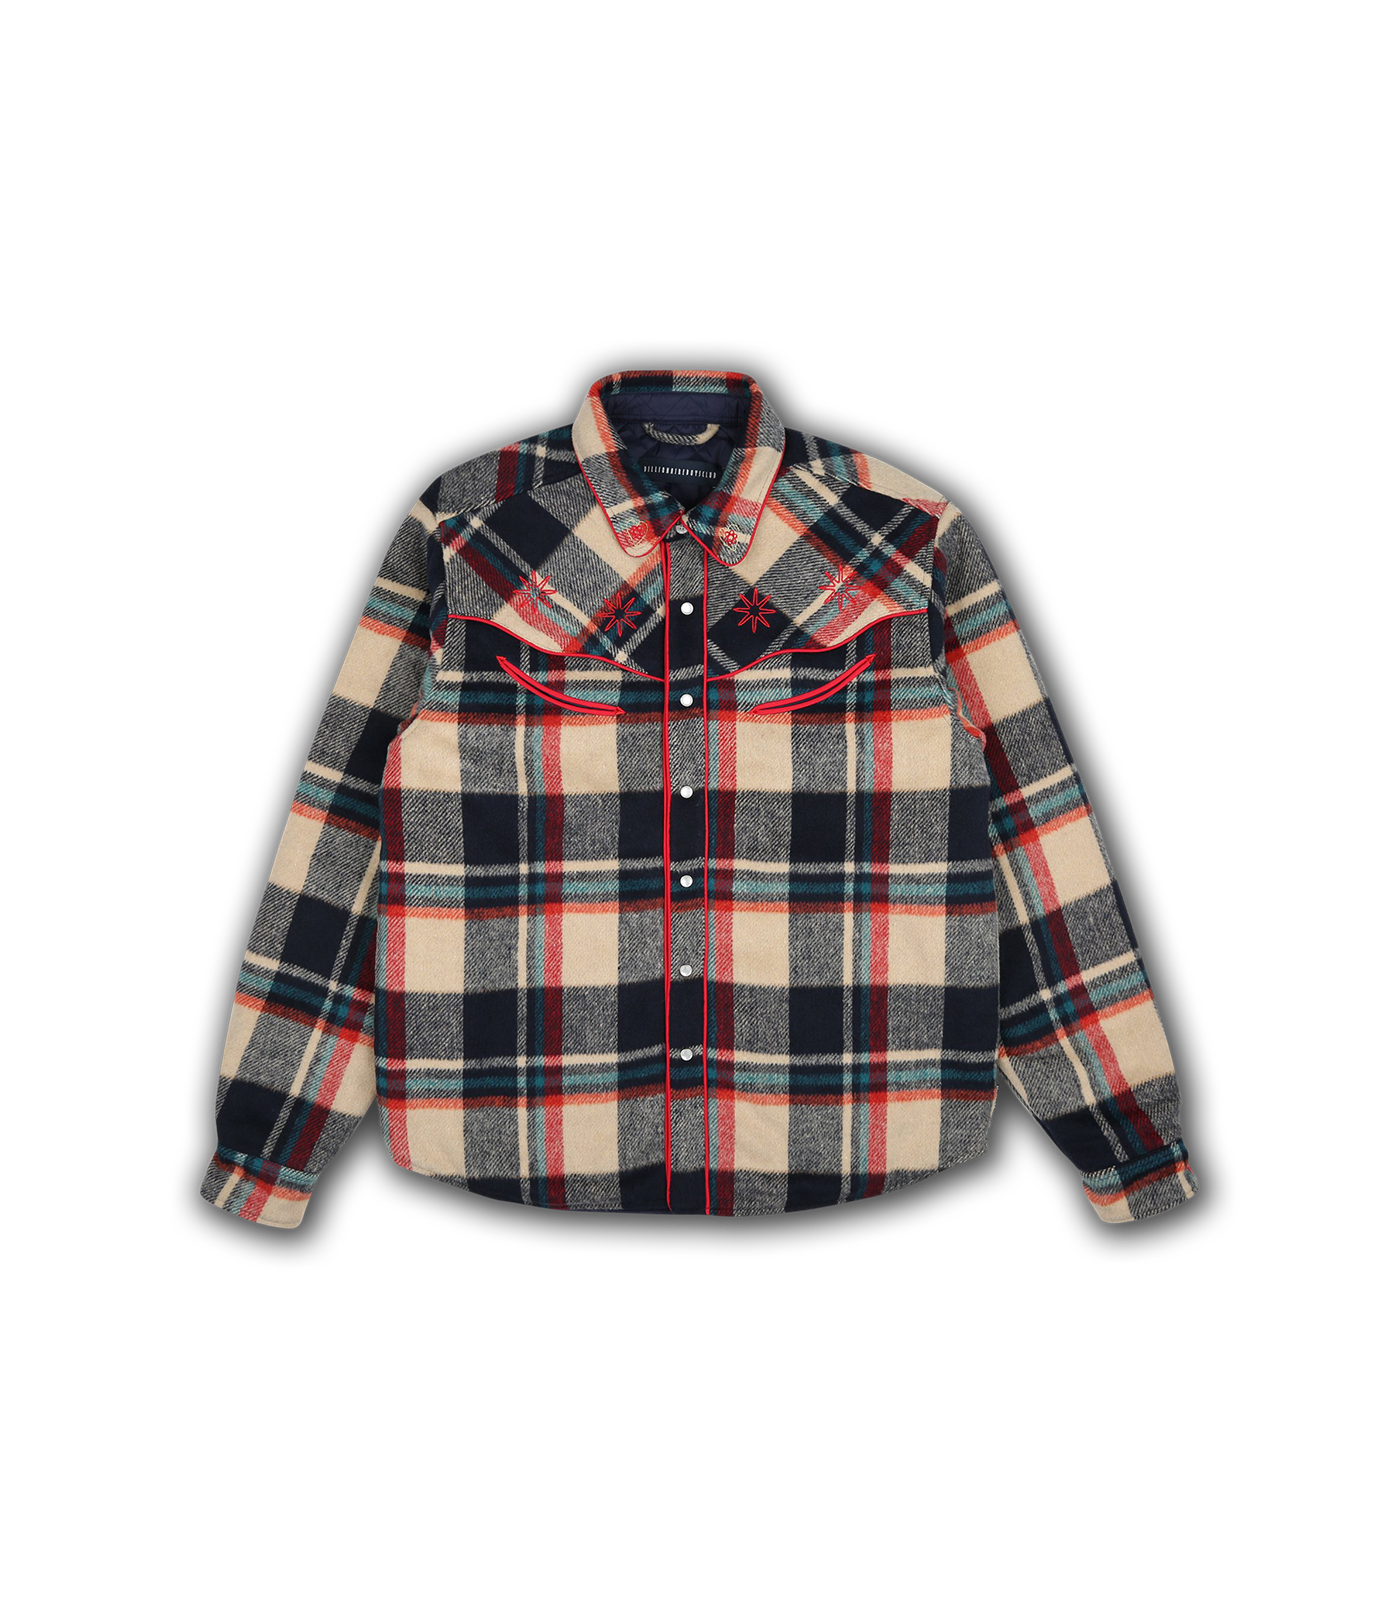 WESTERN CHECK SHIRT - TAN